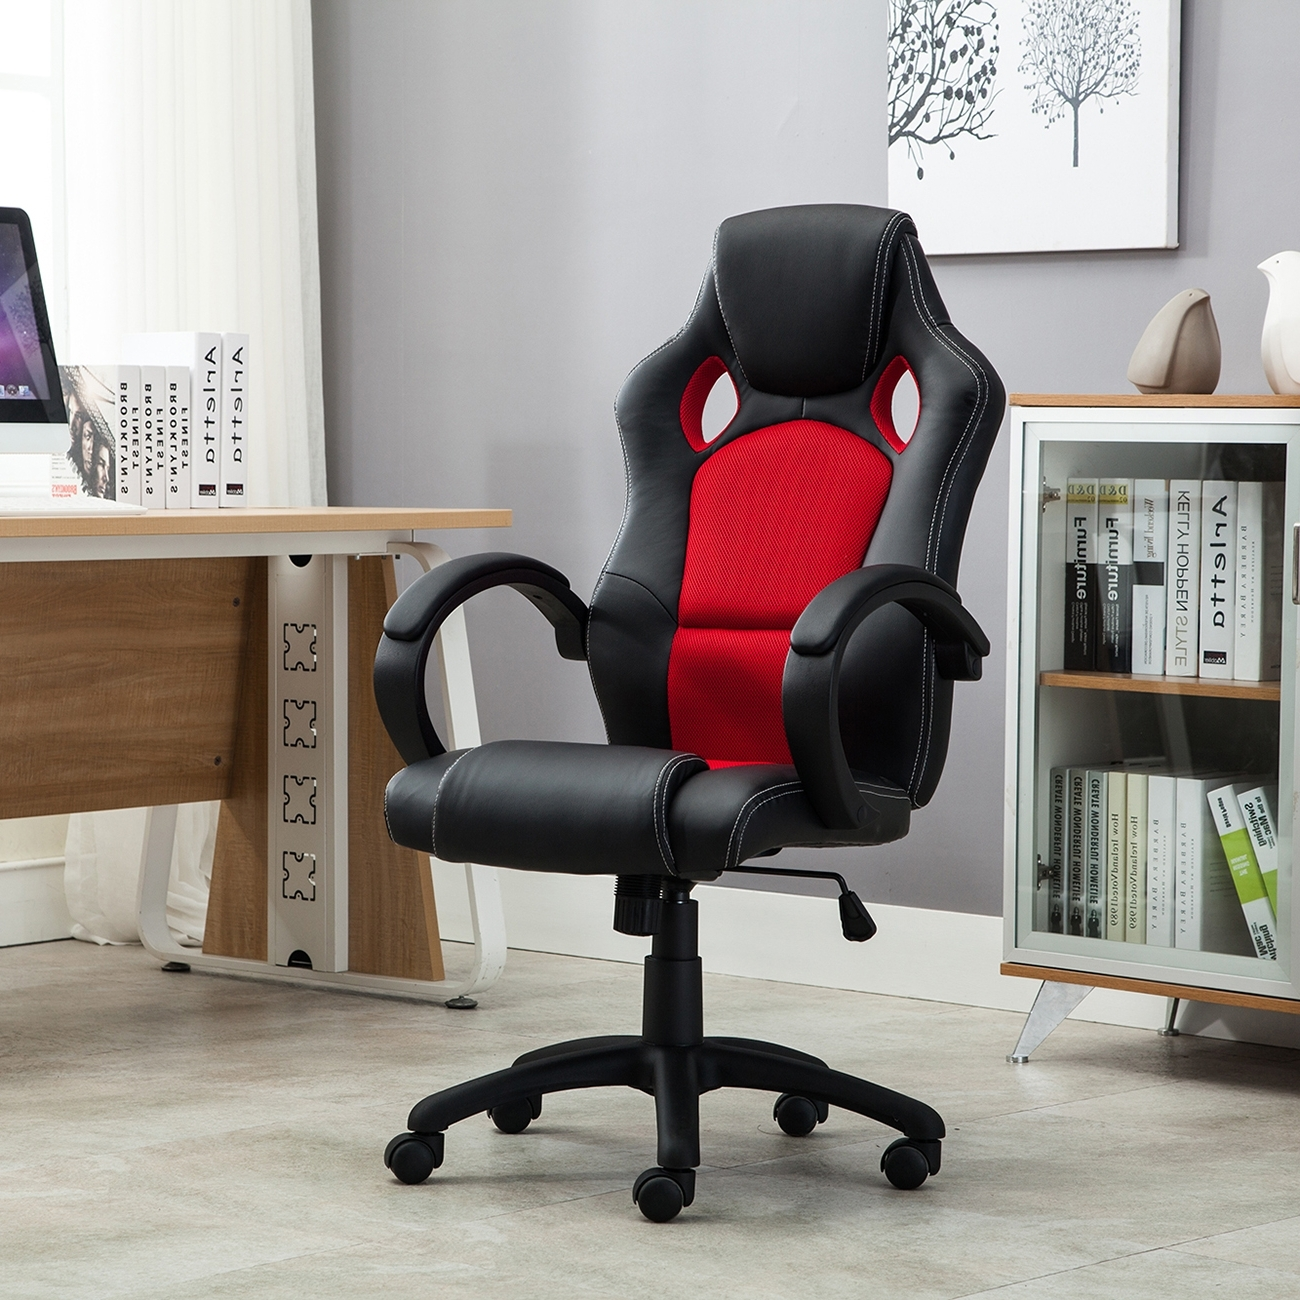 Executive Office Racing Chairs Regarding Well Liked High Back Race Car Style Bucket Seat Office Desk Chair Gaming (View 9 of 20)